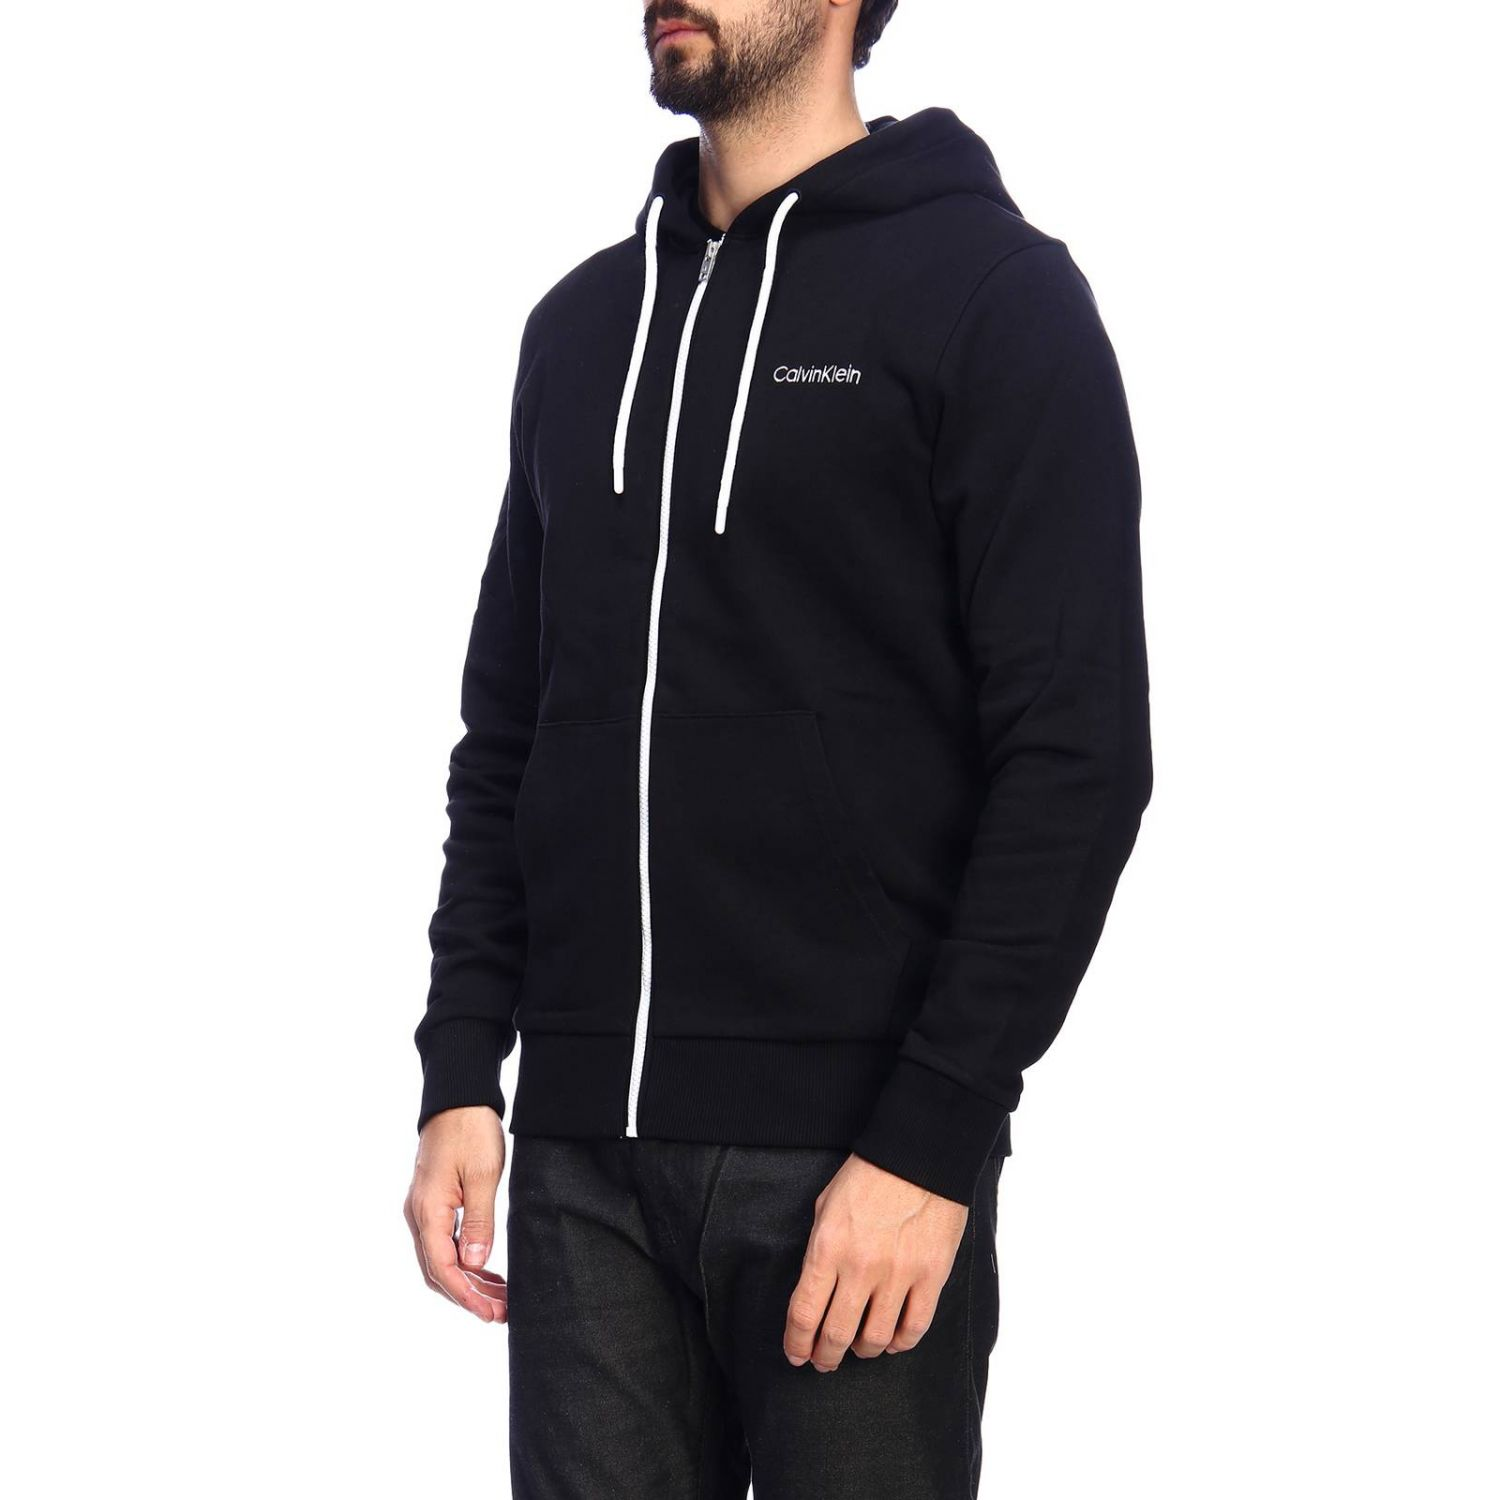 Sweater men Calvin Klein black 2